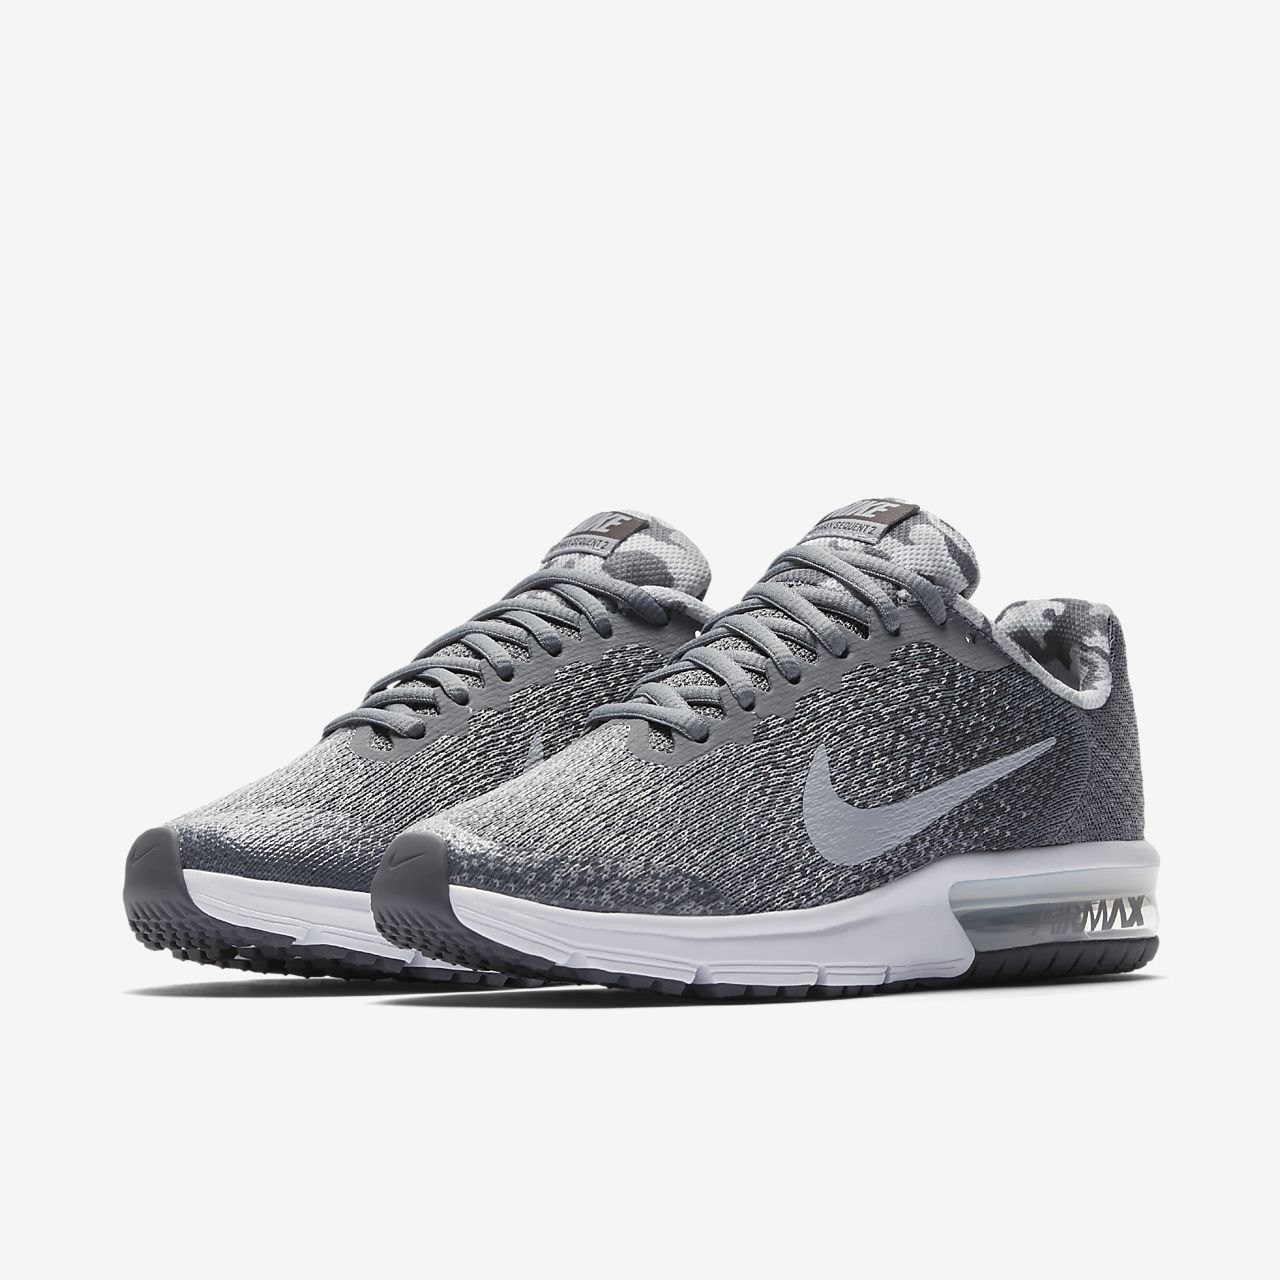 2scarpa uomo nike air max sequent 2